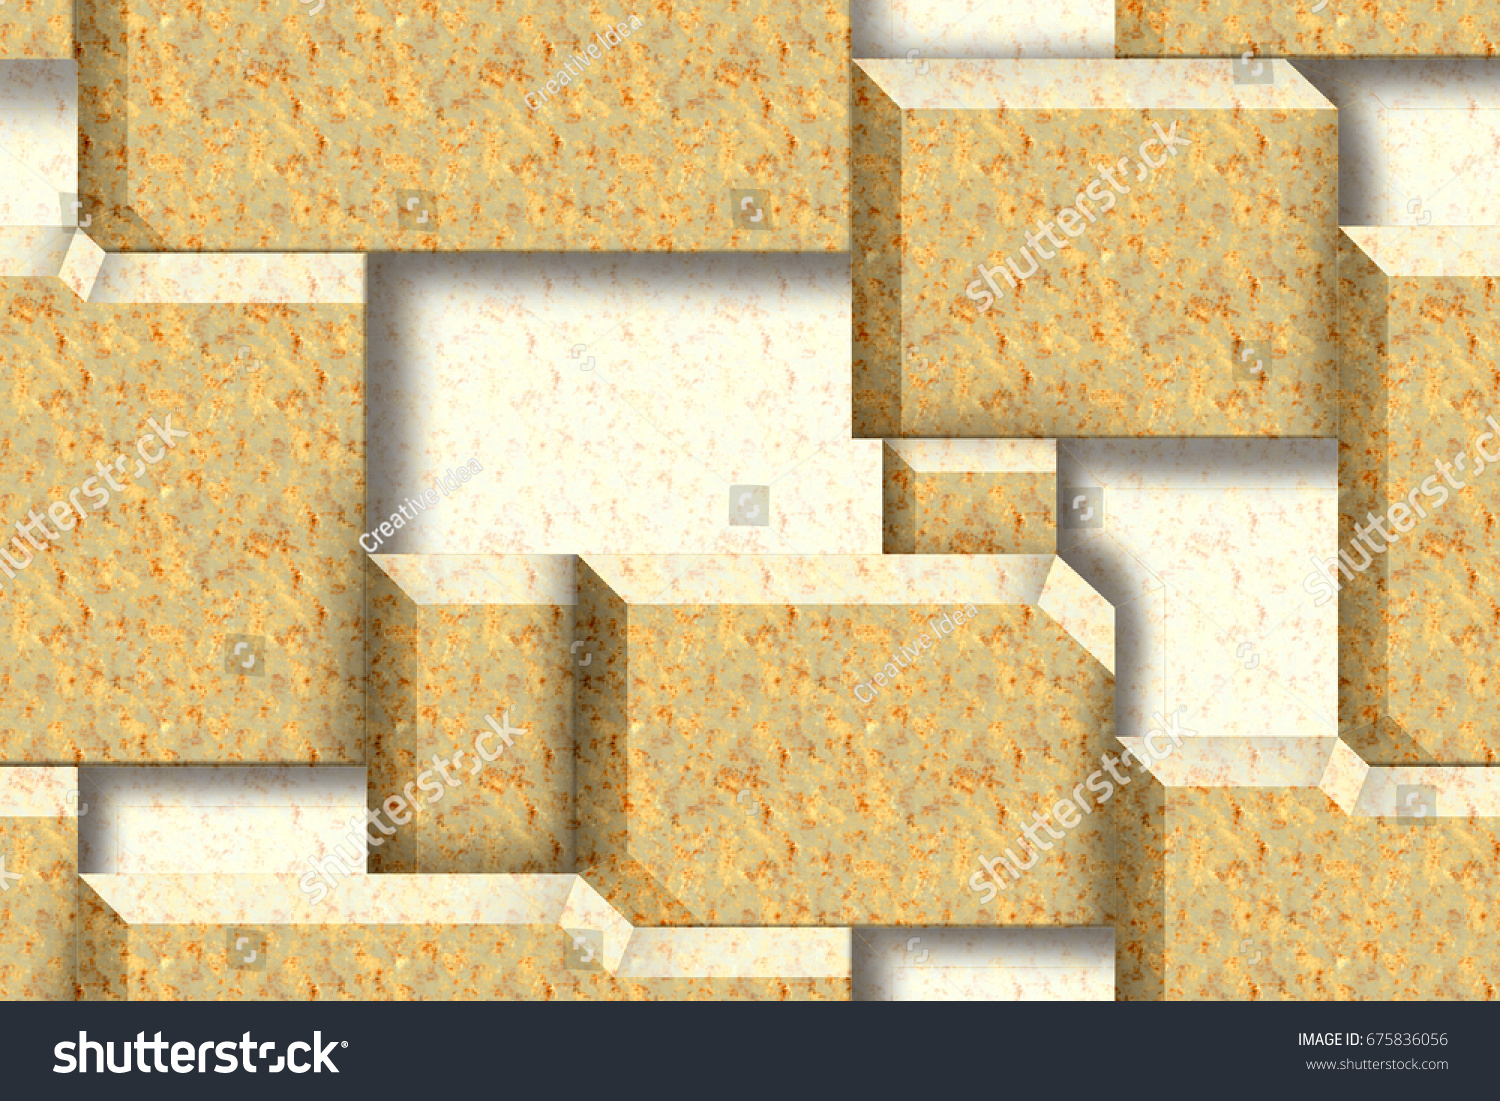 Abstract Home Decorative Wall 3d Marble Stock Illustration 675836056 ...